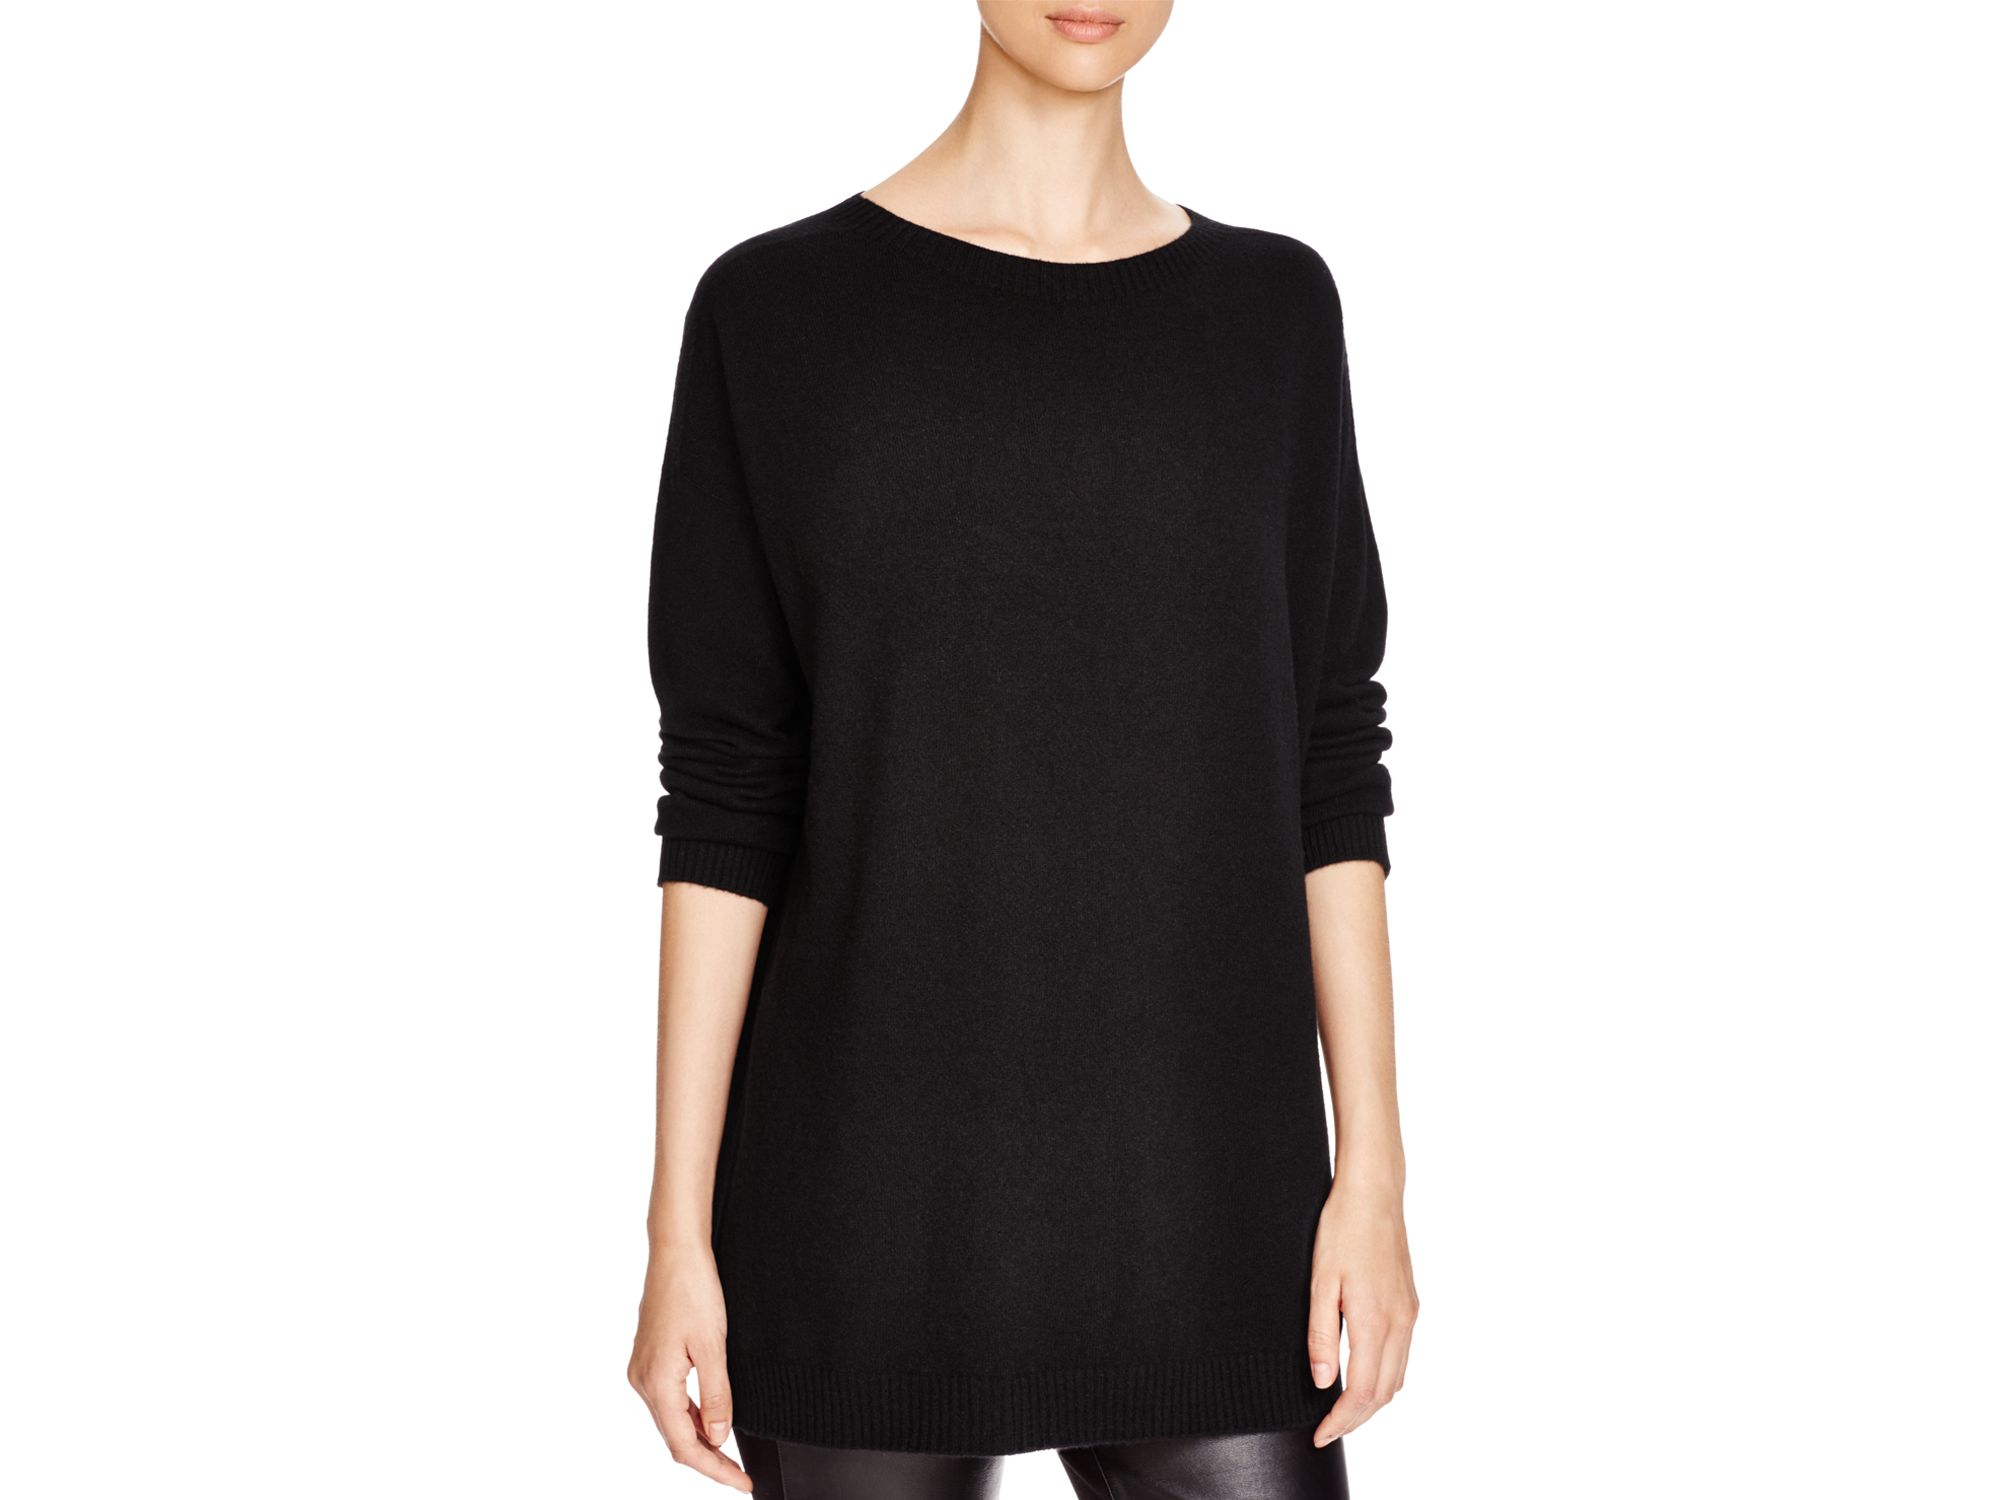 67a3737b93f Eileen Fisher Cashmere Tunic Sweater in Black - Lyst